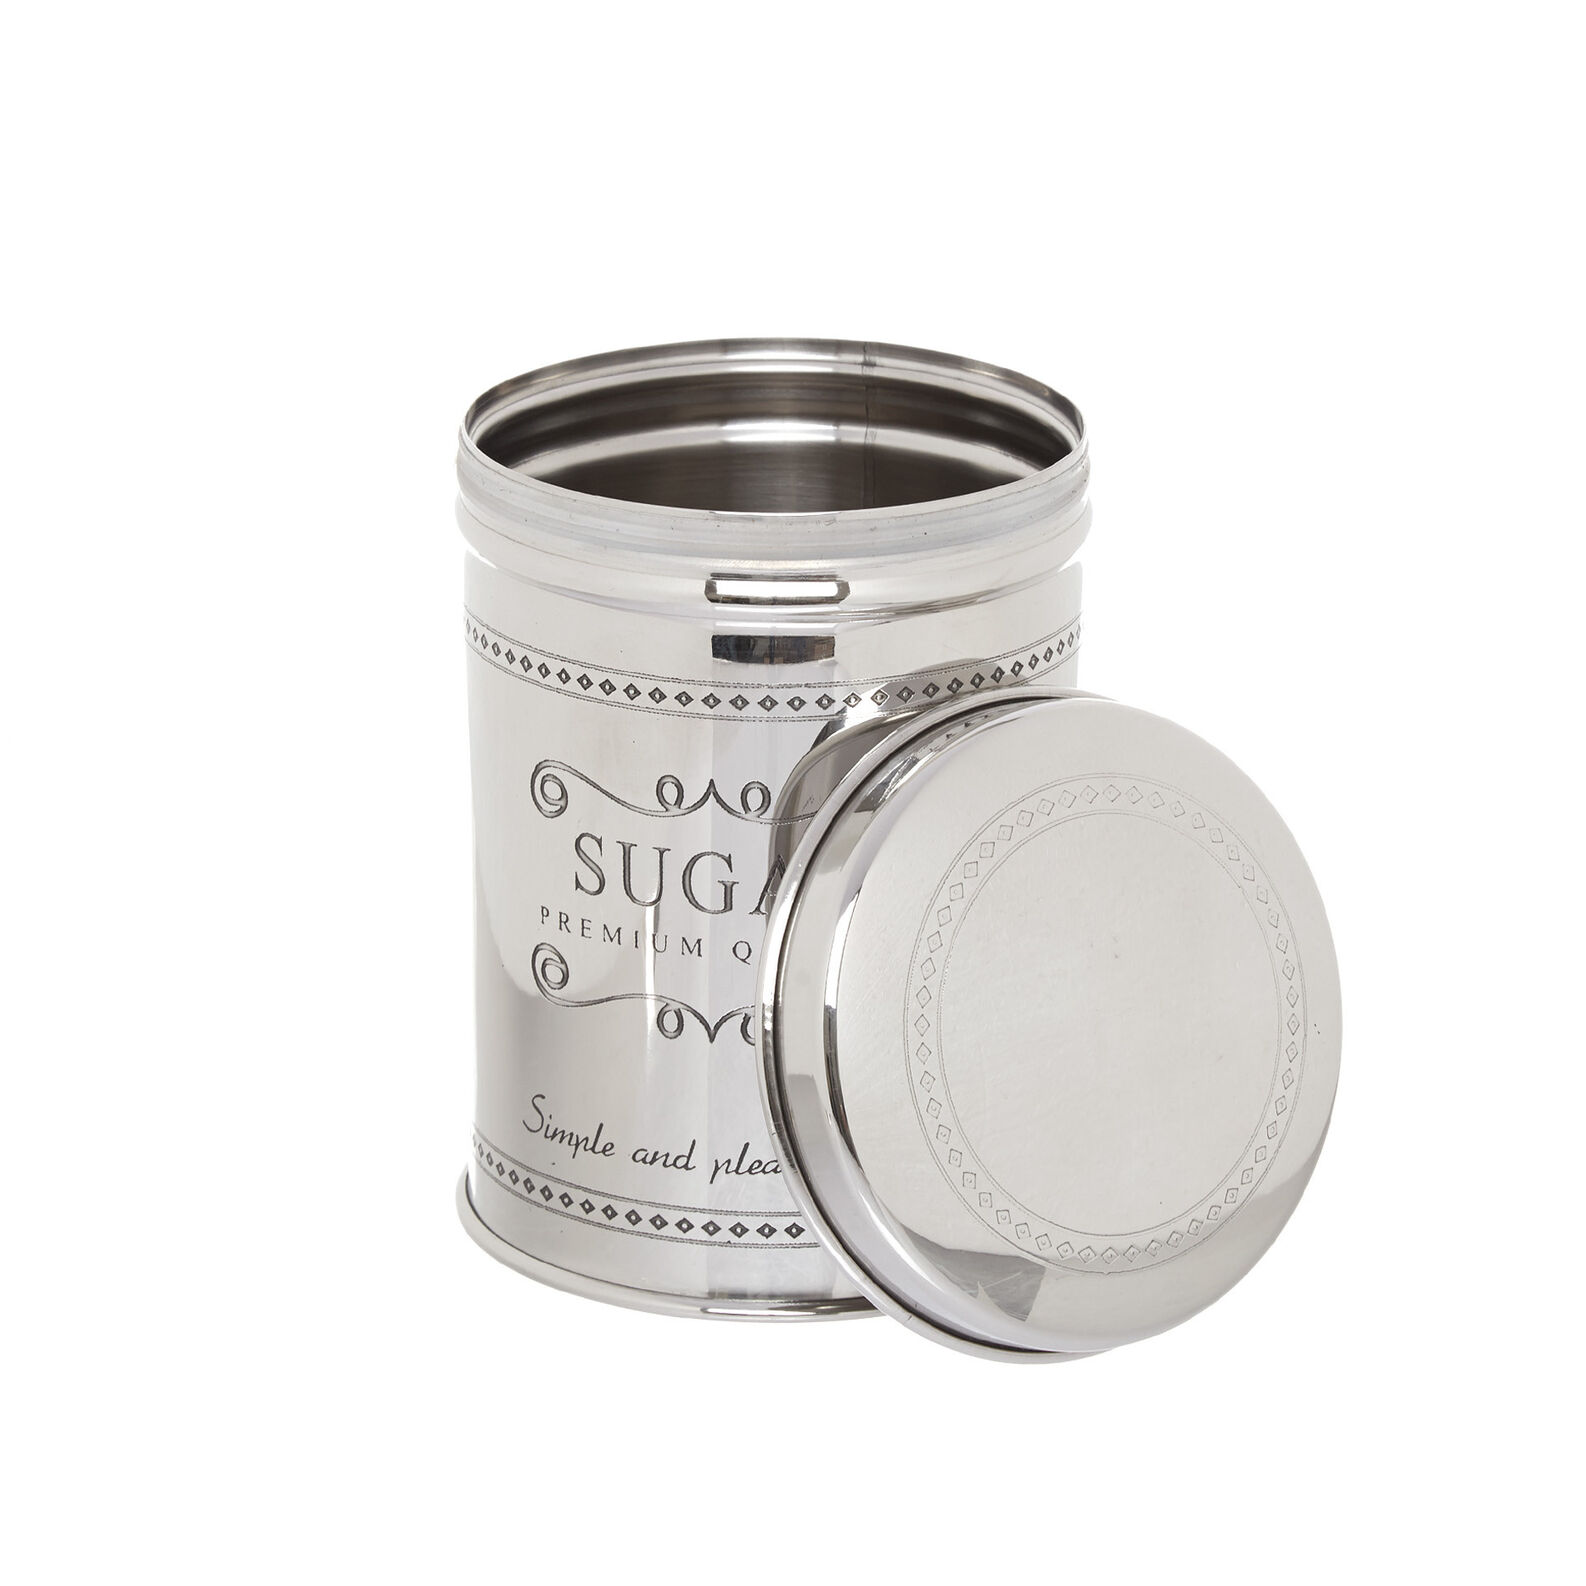 Steel sugar tin with lettering